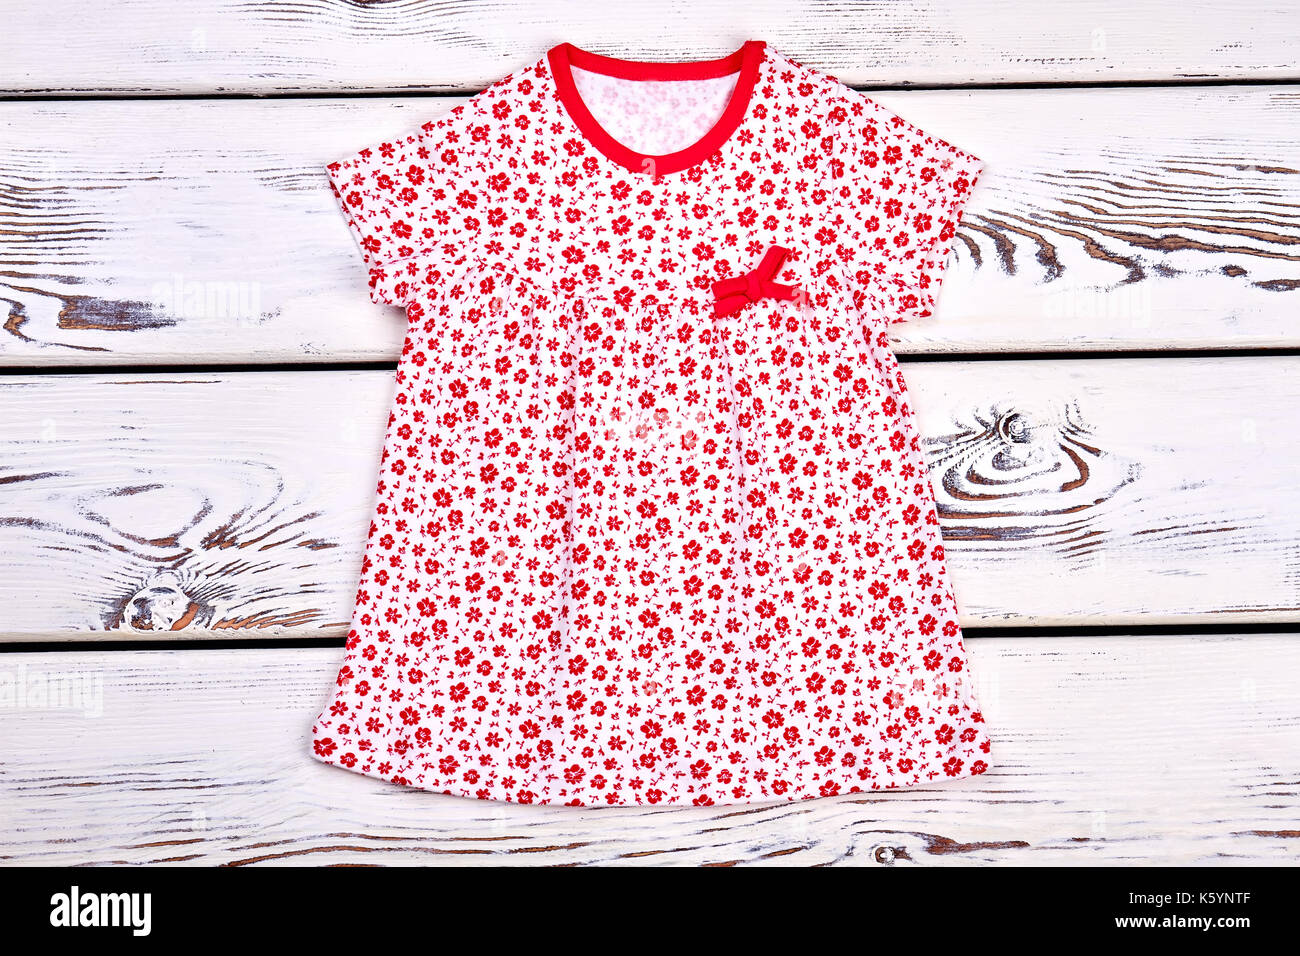 088883ecd71 Toddler girl cute printed top. Baby-girl vintage print summer dress on  white wooden background. Kids organic clothes.